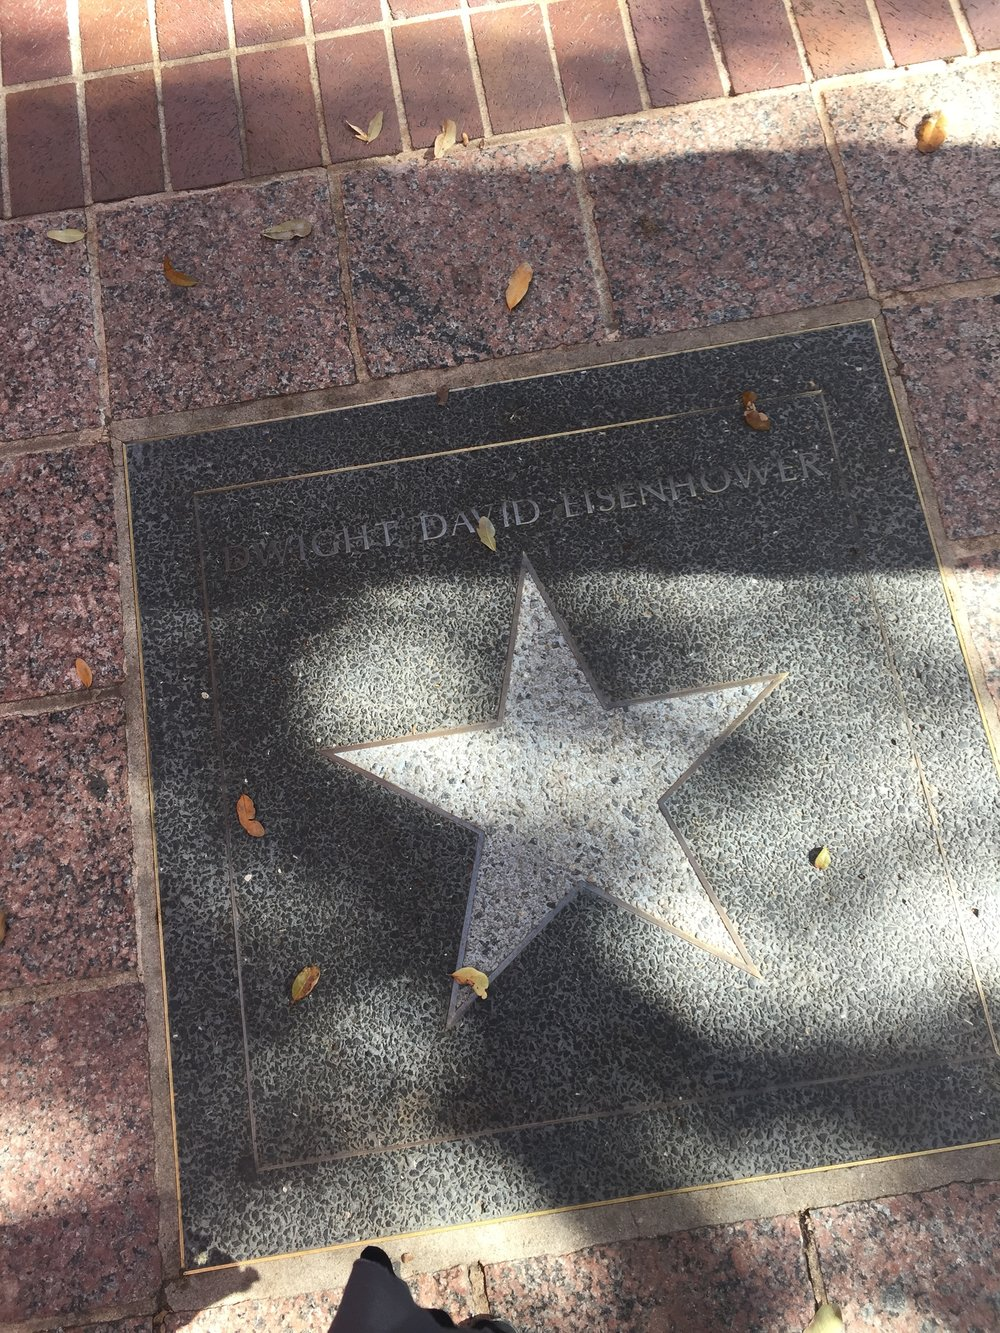 And on the Austin streets just a few blocks from our EF Day at SXSW, a star for President Dwight D Eisenhower. What a journey.